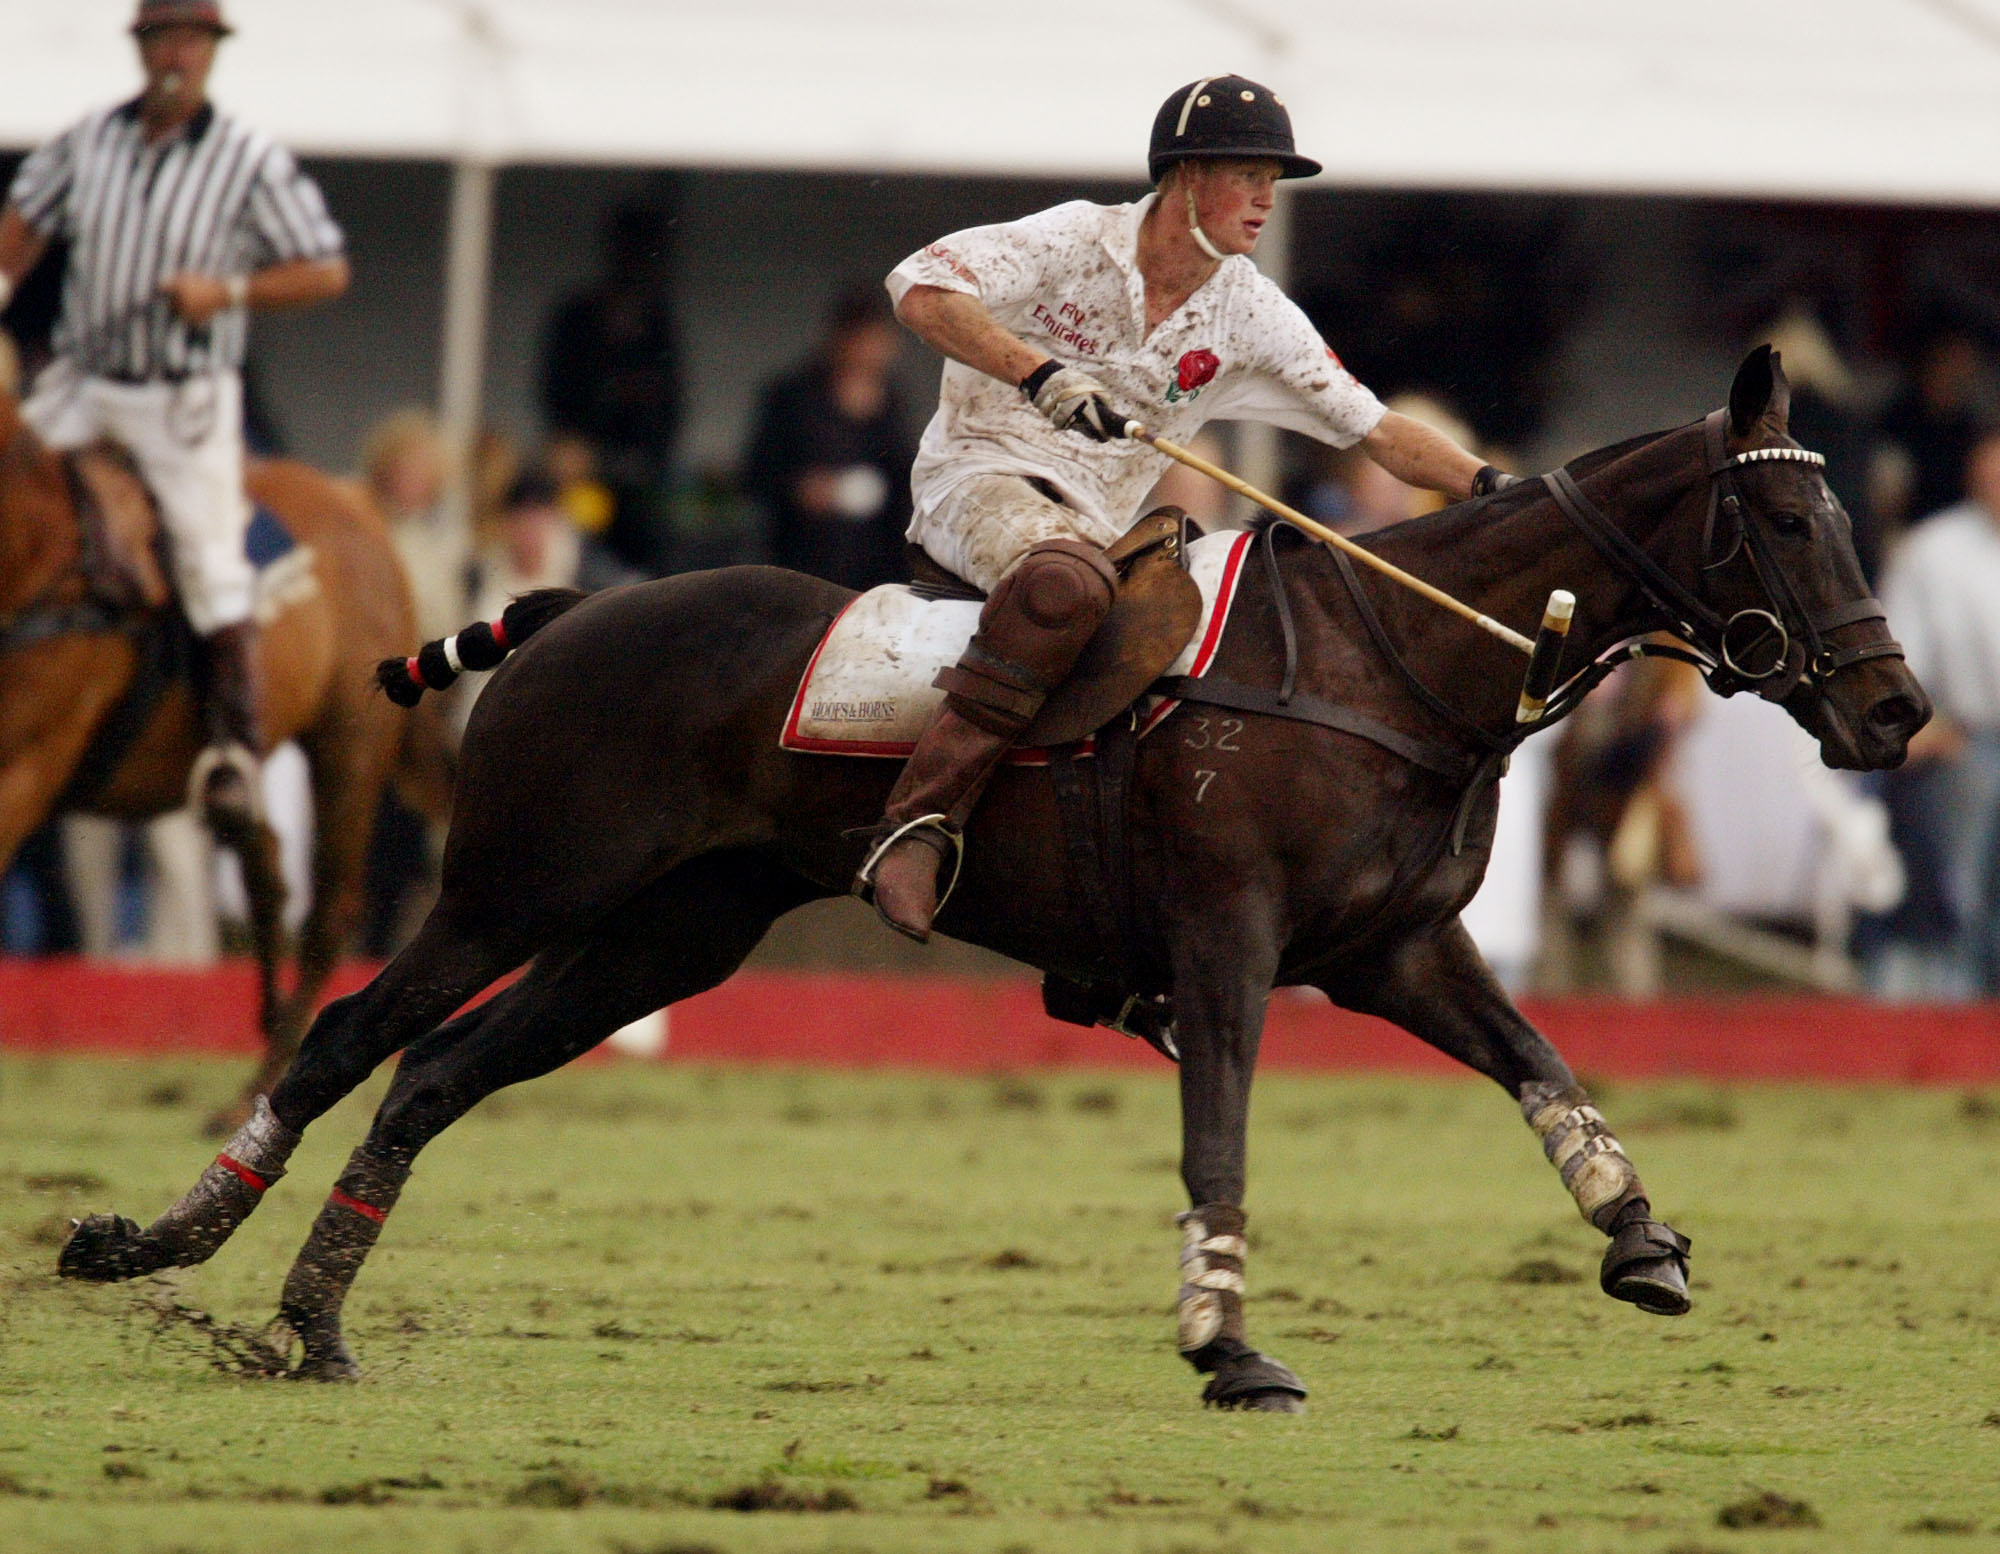 Prince Harry chases after the ball during the Young England Team against the Young Australian Team polo match in Richmond, Australia on Nov. 23, 2003.